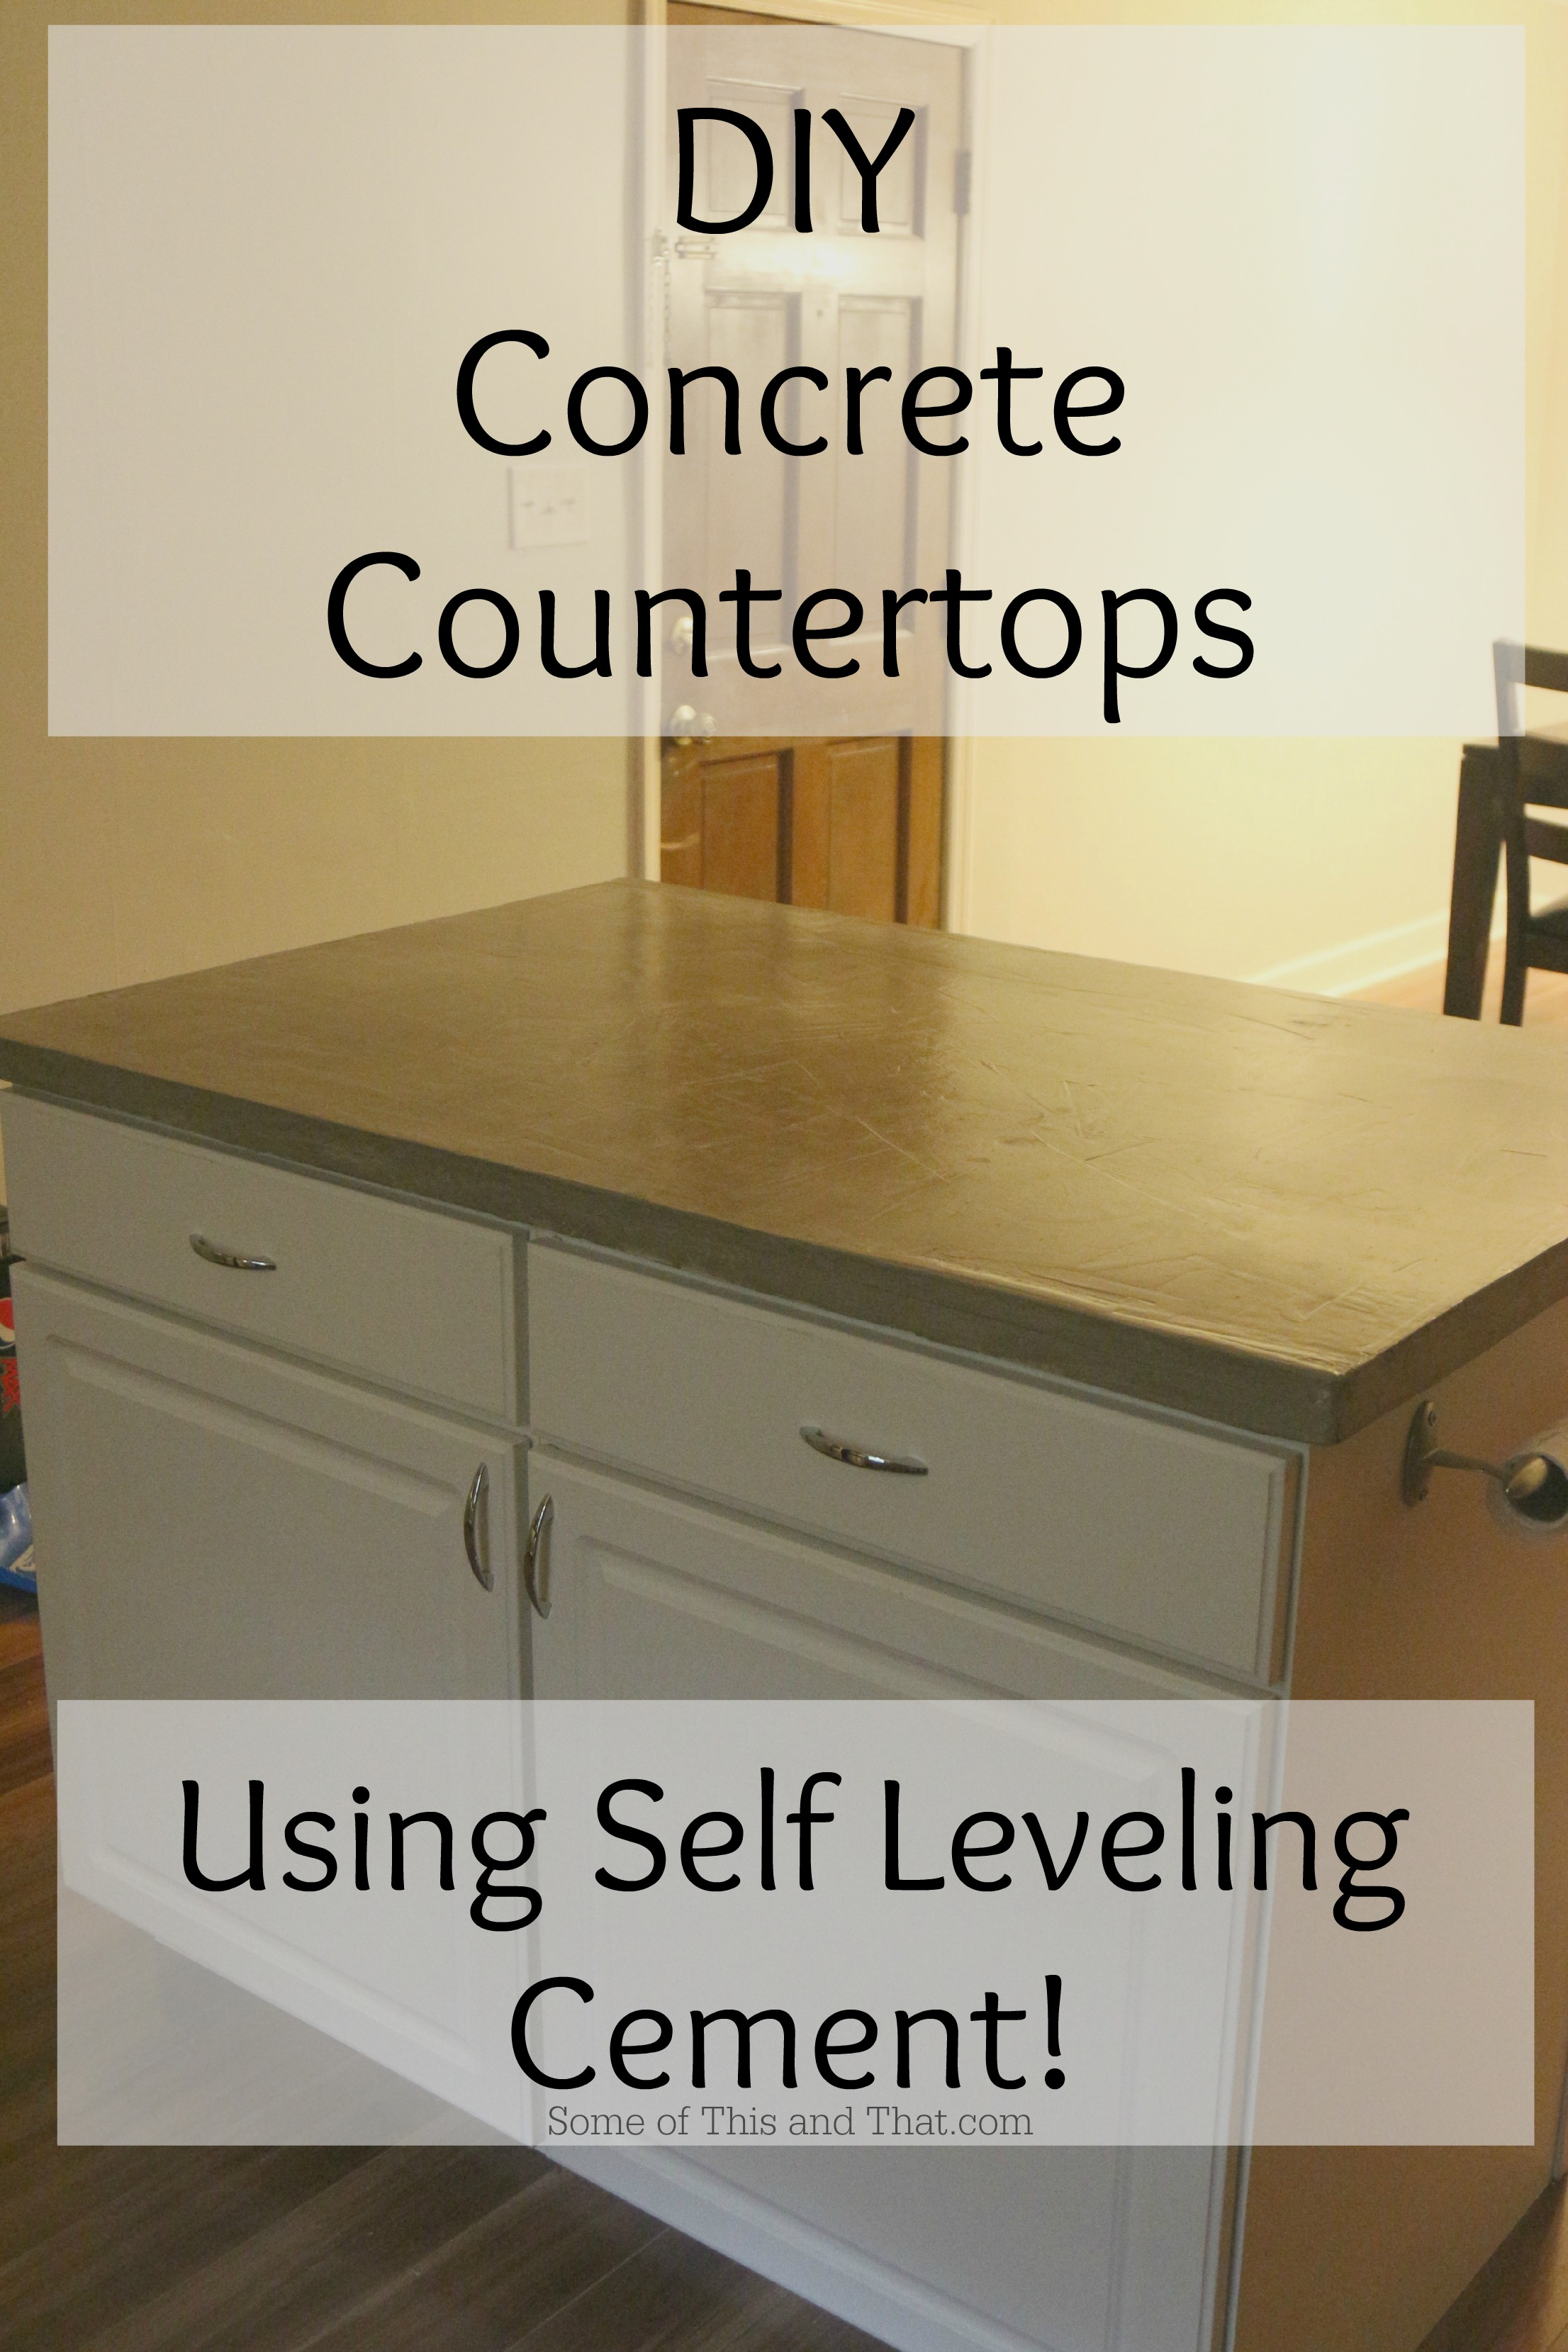 Diy concrete countertops using self leveling cement some of this diy concrete countertops using self leveling cement solutioingenieria Choice Image